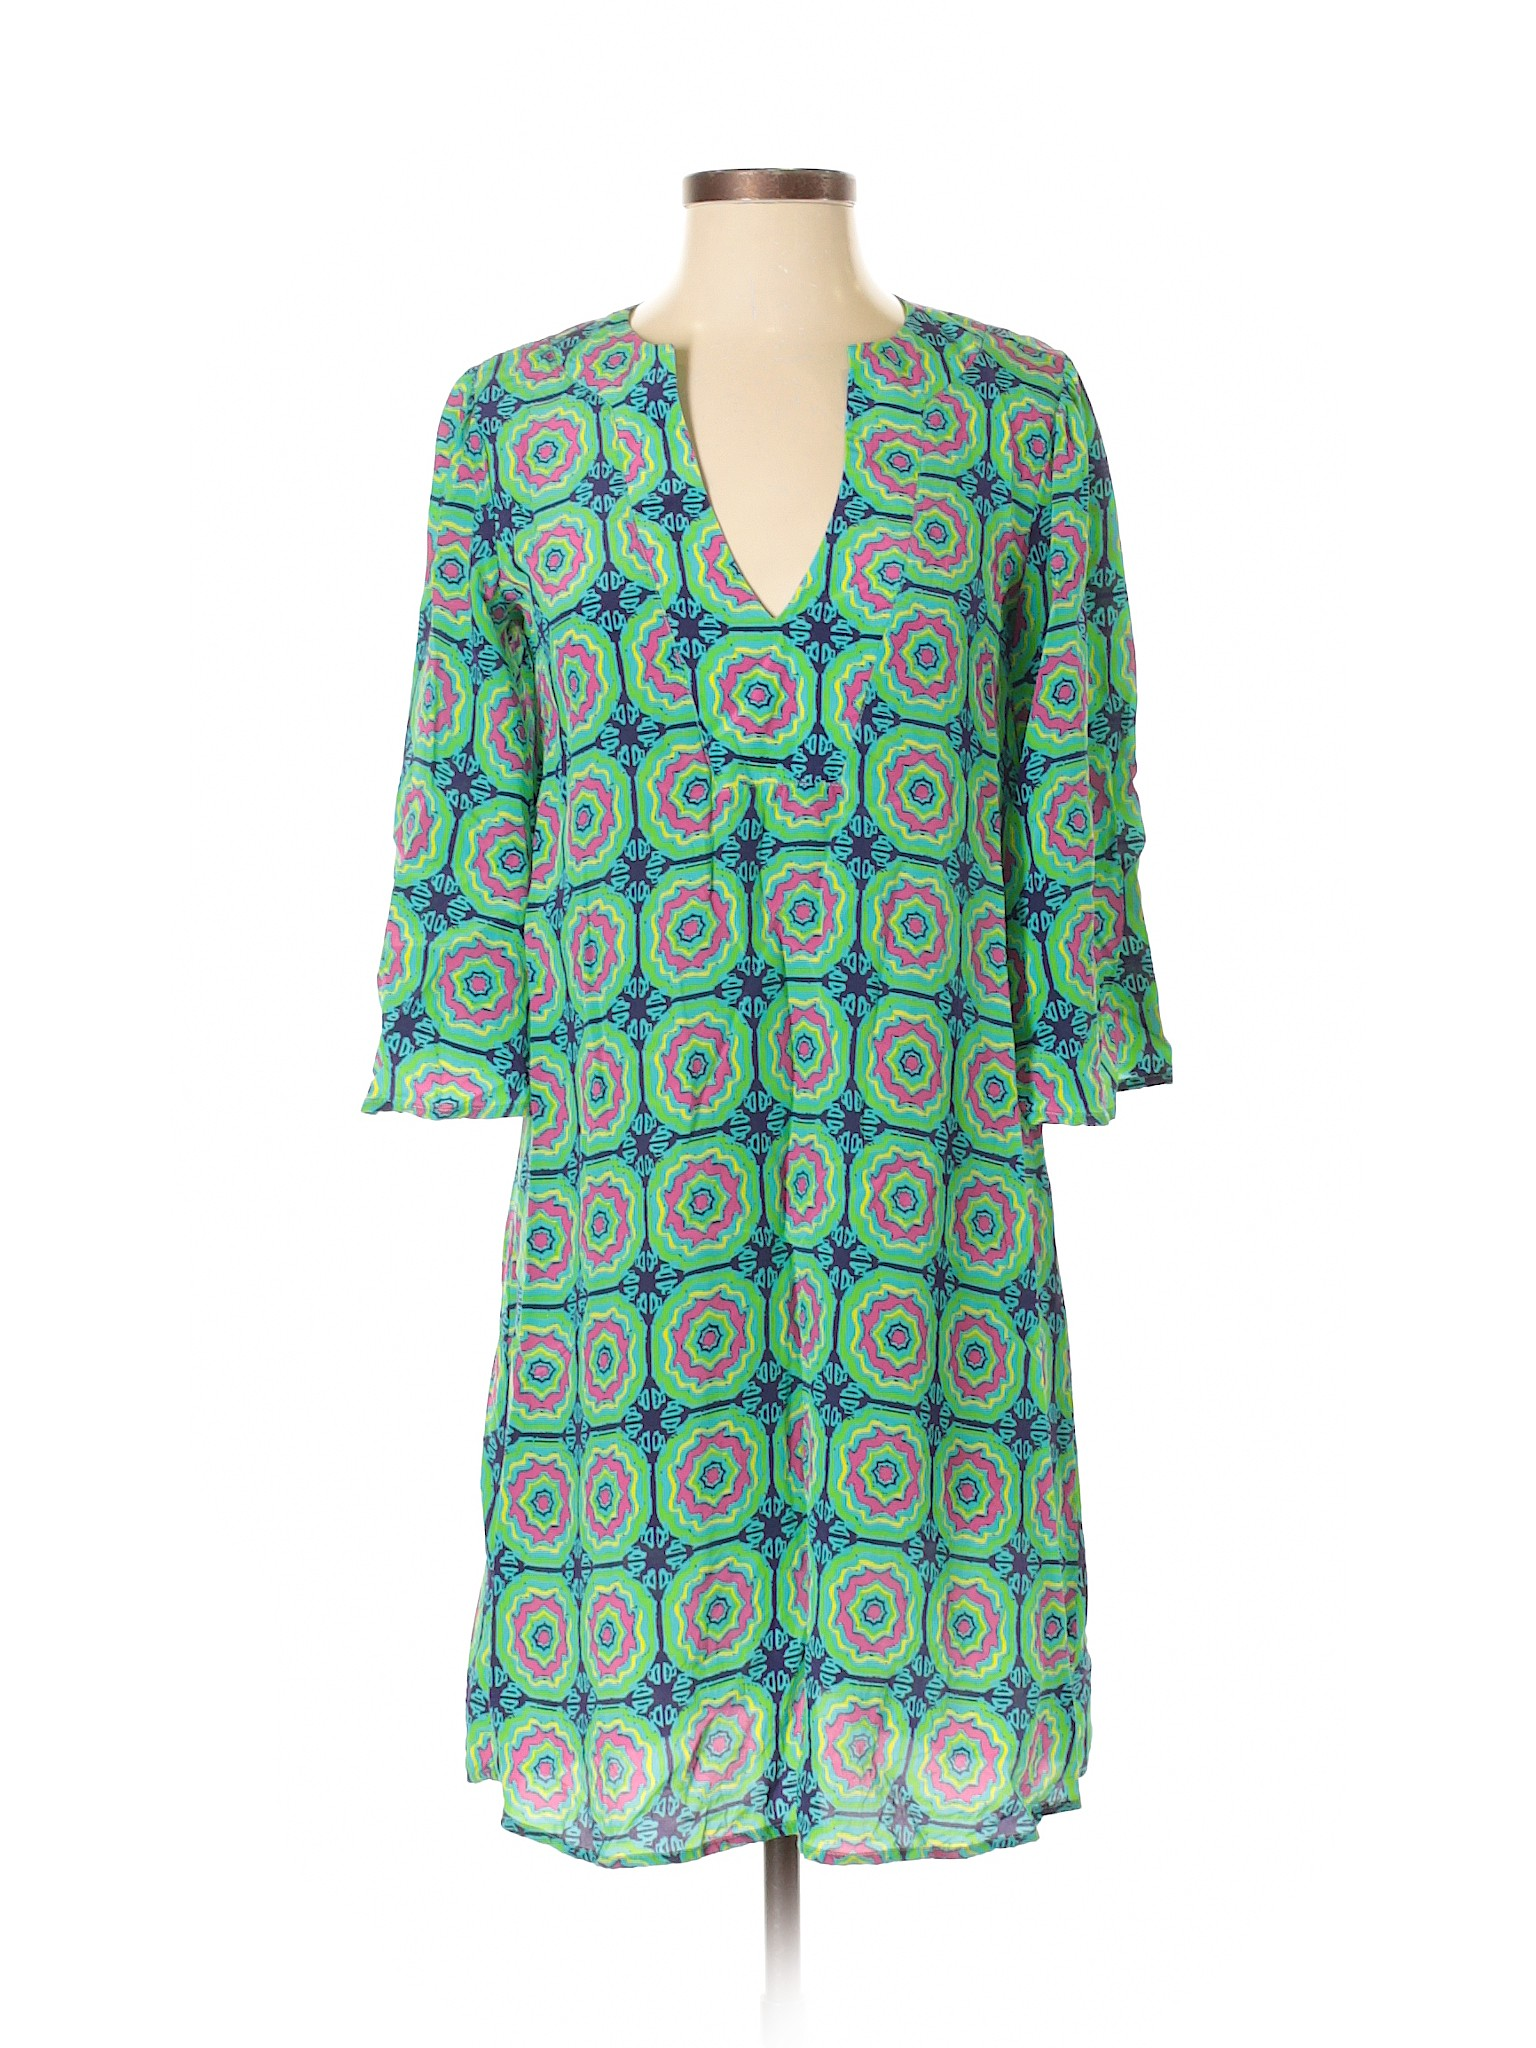 Green n gold dress  Casual Dress  Products  Pinterest  Casual Dresses and Green